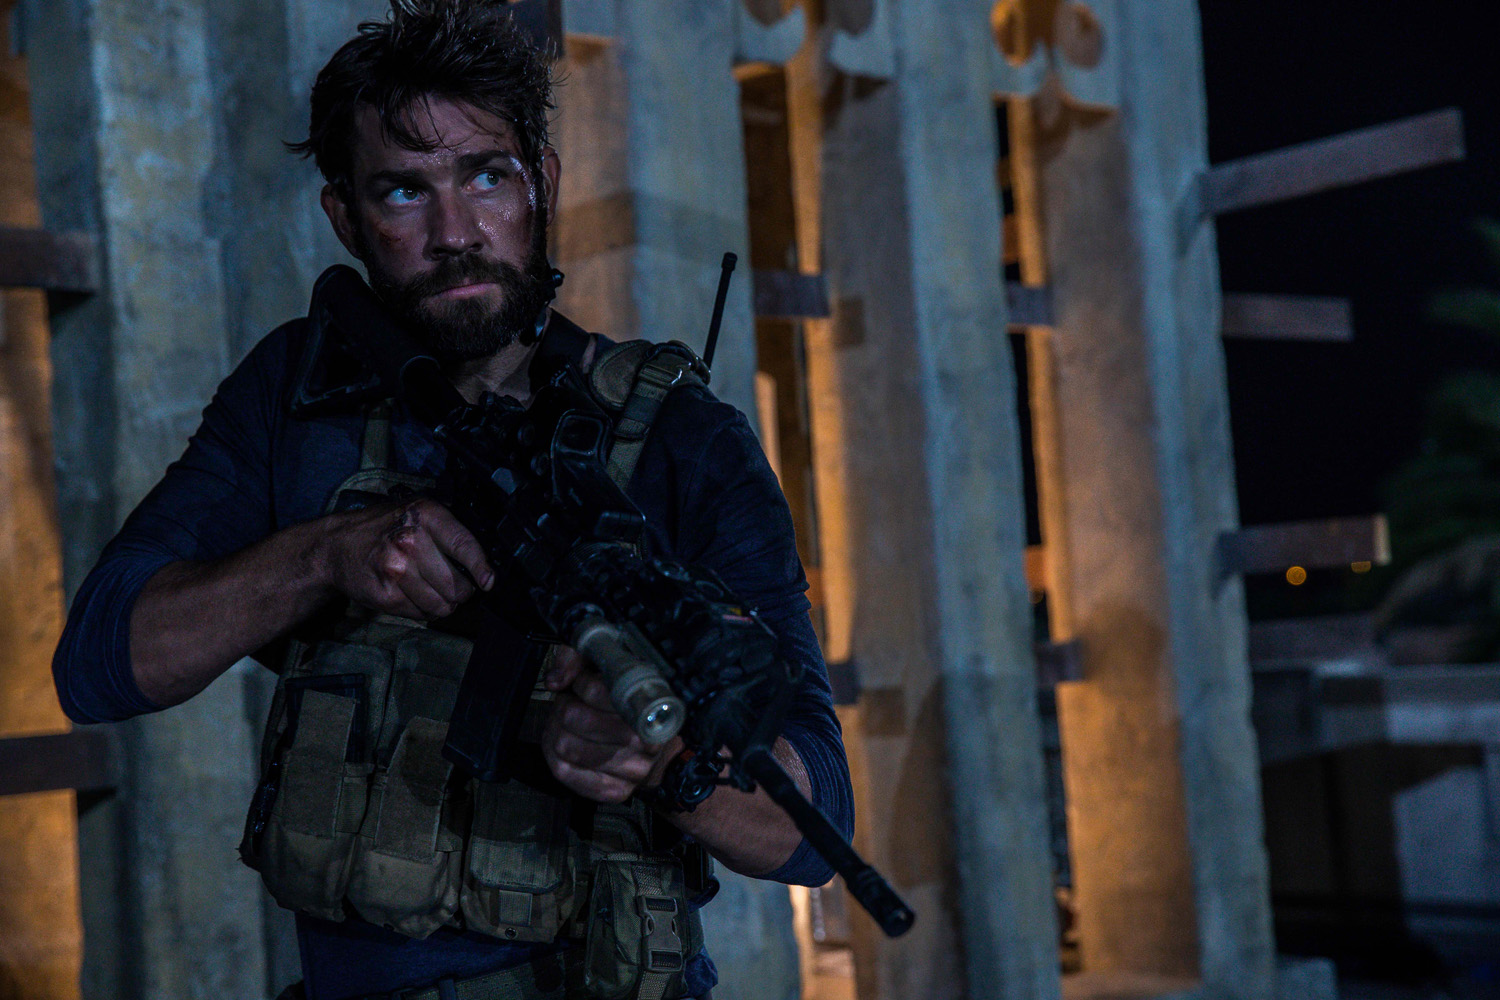 His First Action Role John Krasinski Trains Hard For 13 Hours Bettina Heels Bernyce Black Hitam 39 From Director Michael Bay The Secret Soldiers Of Benghazi Is Gripping True Story Six Elite Ex Military Operators Assigned To Protect